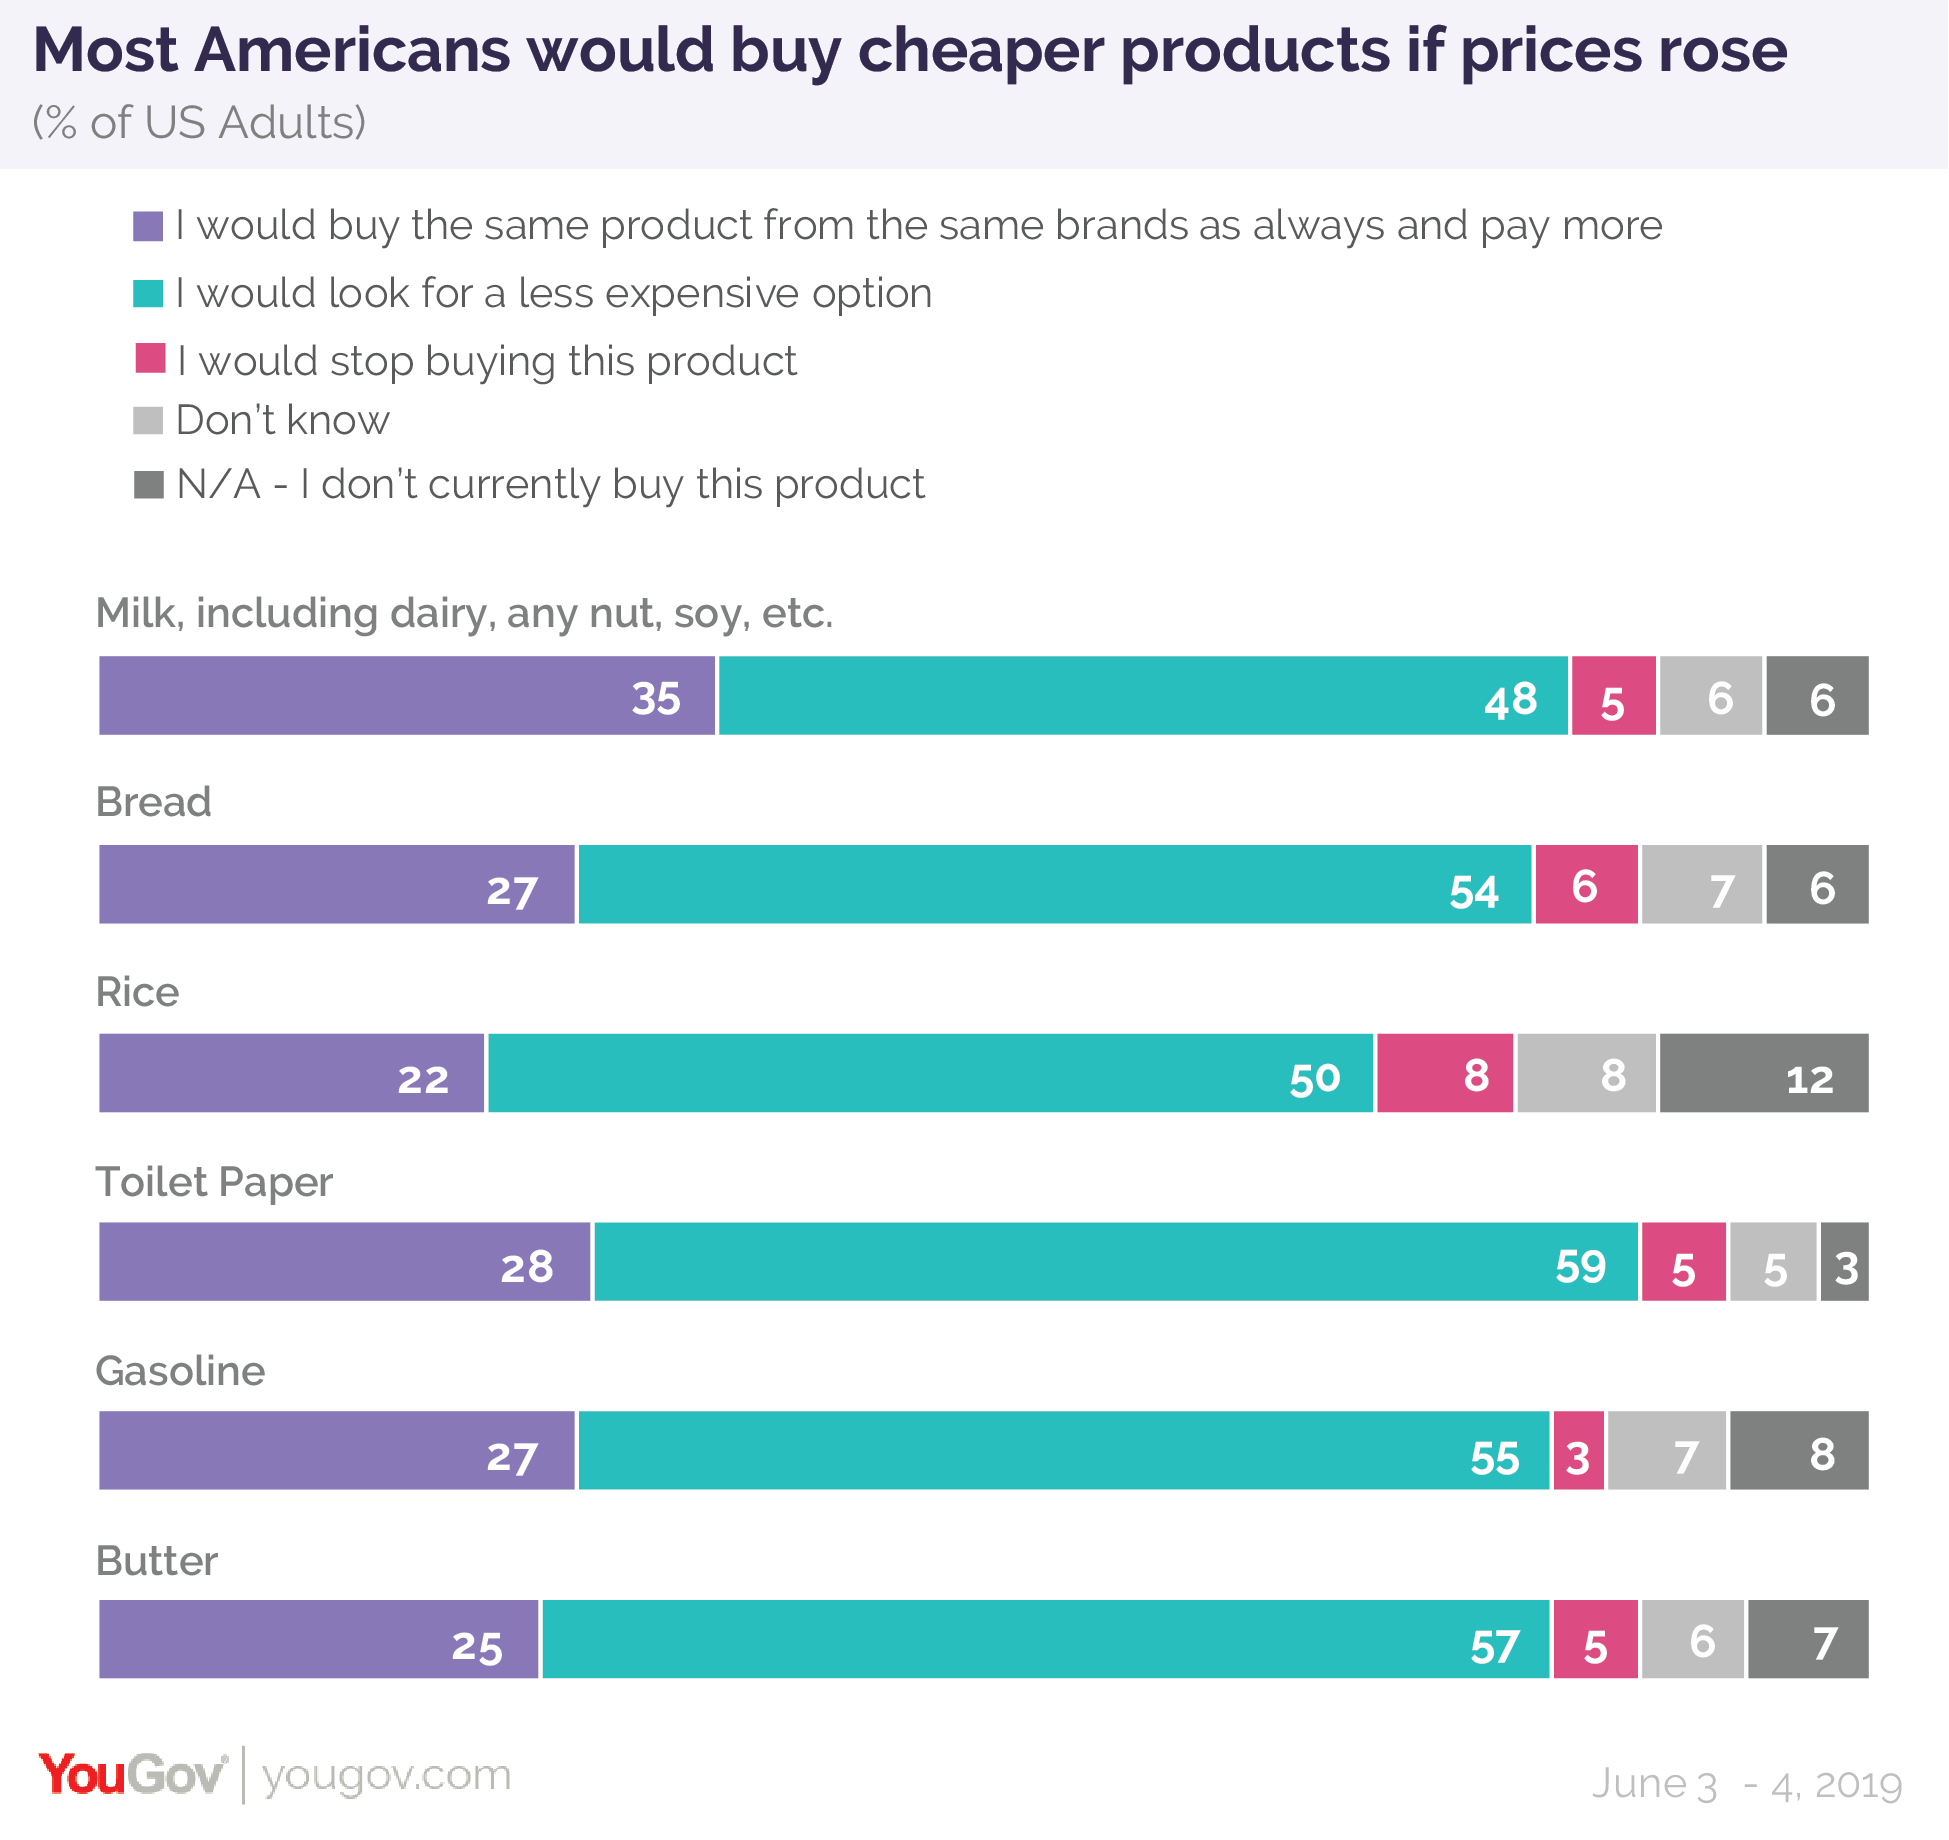 Most Americans would buy cheaper products if prices rose